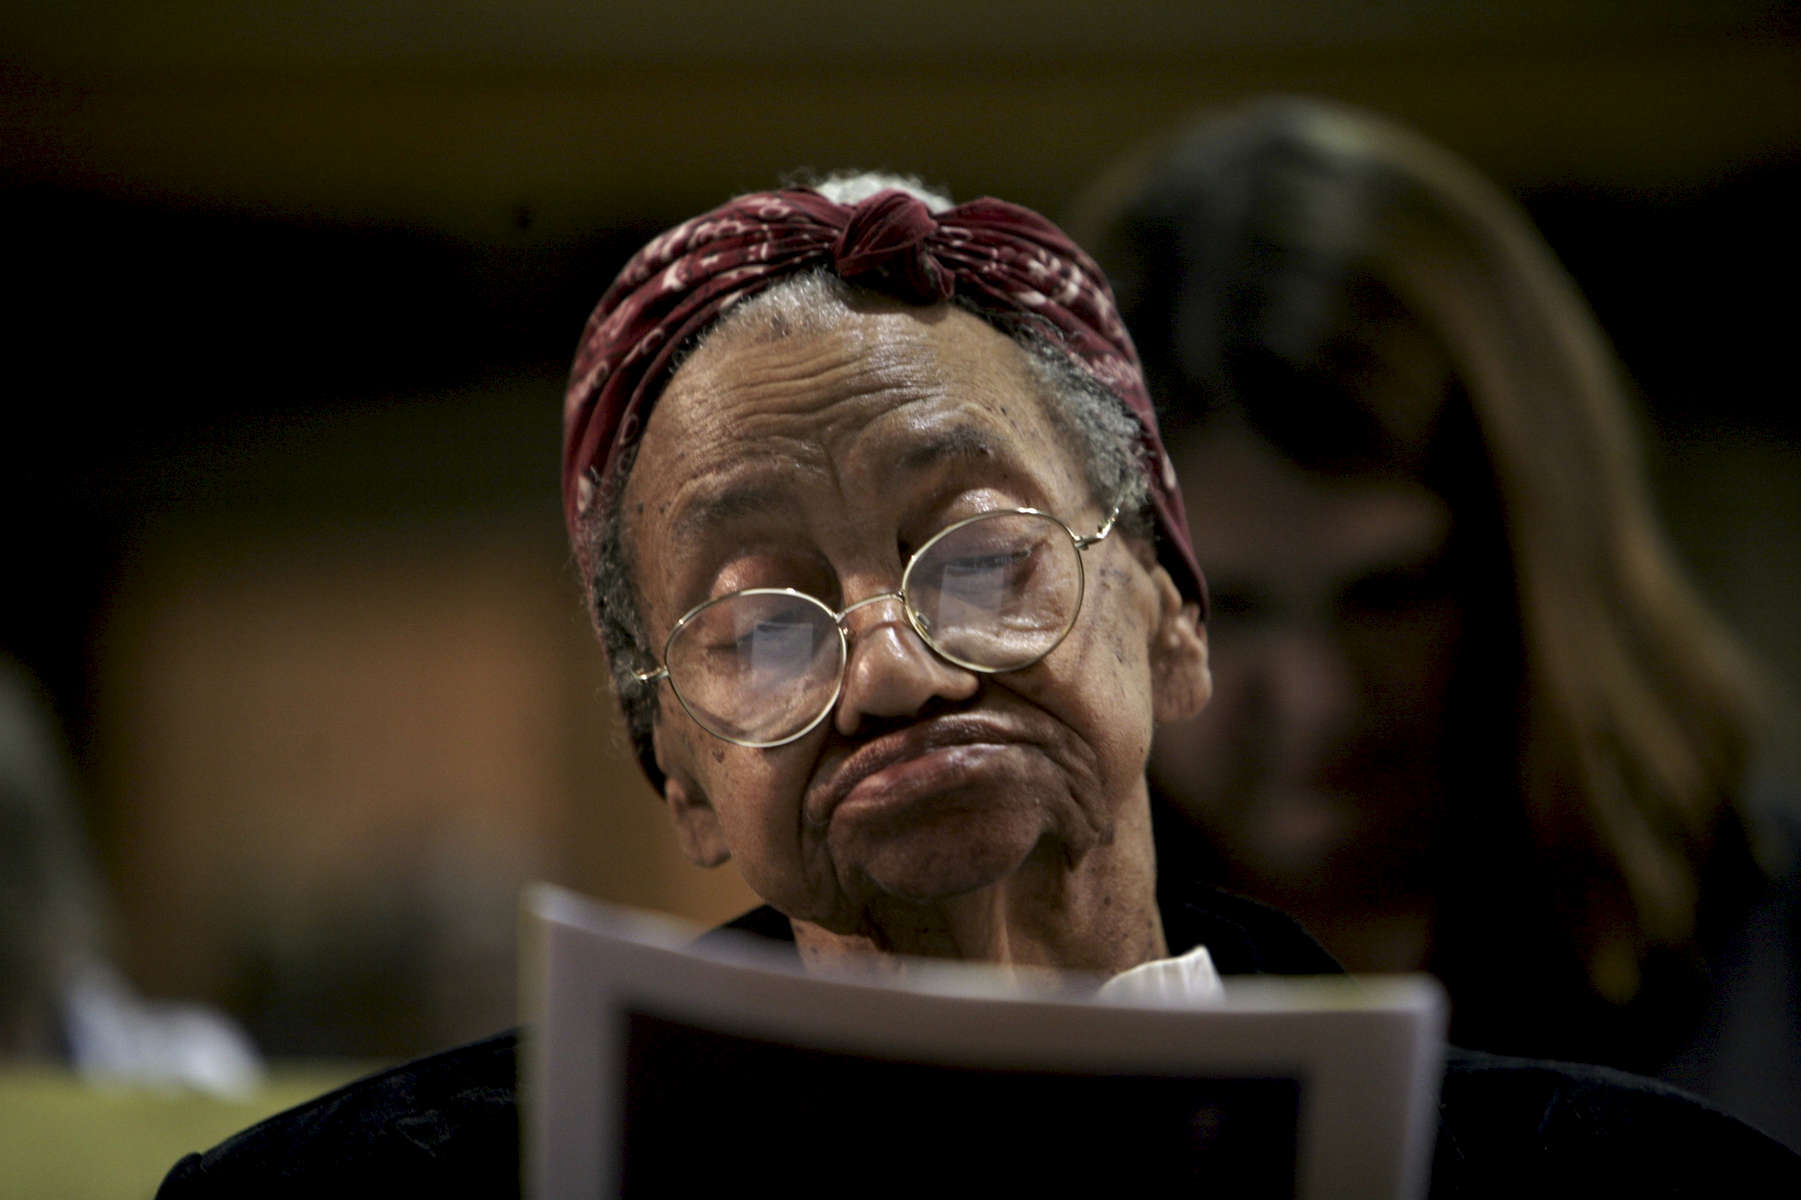 LueDella Burgess, 82, has lived in Chicago's Austin neighborhood since 1946. The west side neighborhood and bordering suburbs of Maywood and Oak Park have seen hundreds of homes boarded up due to foreclosure. Ms. Burgess attended a meeting of community members and representatives of US Bank to address the issue.